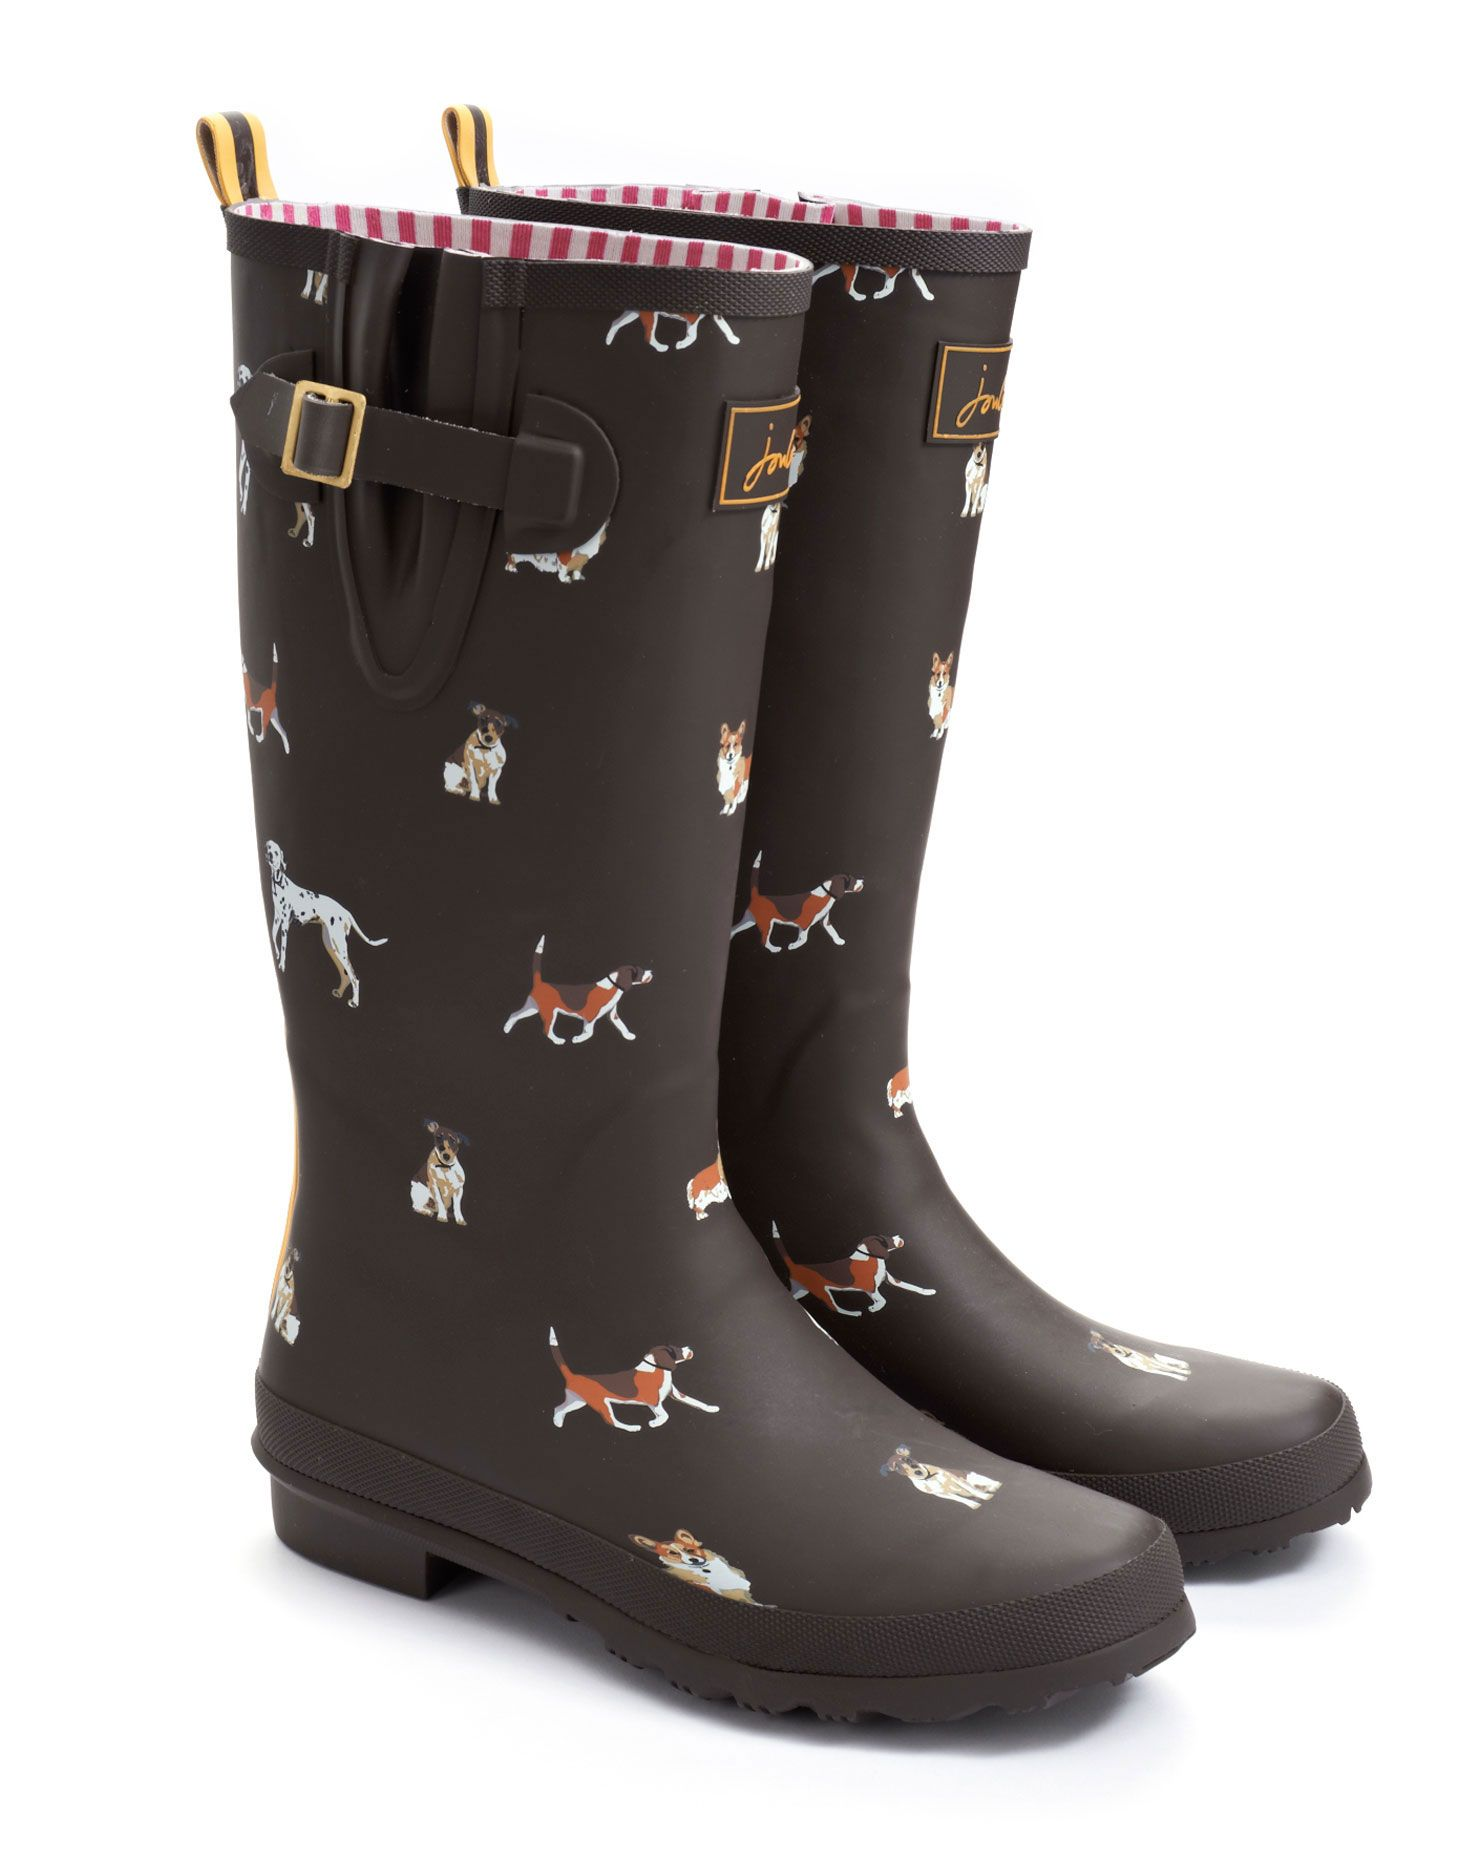 Joules Brown Dog Welly | Back to school : garde robe | Pinterest ...